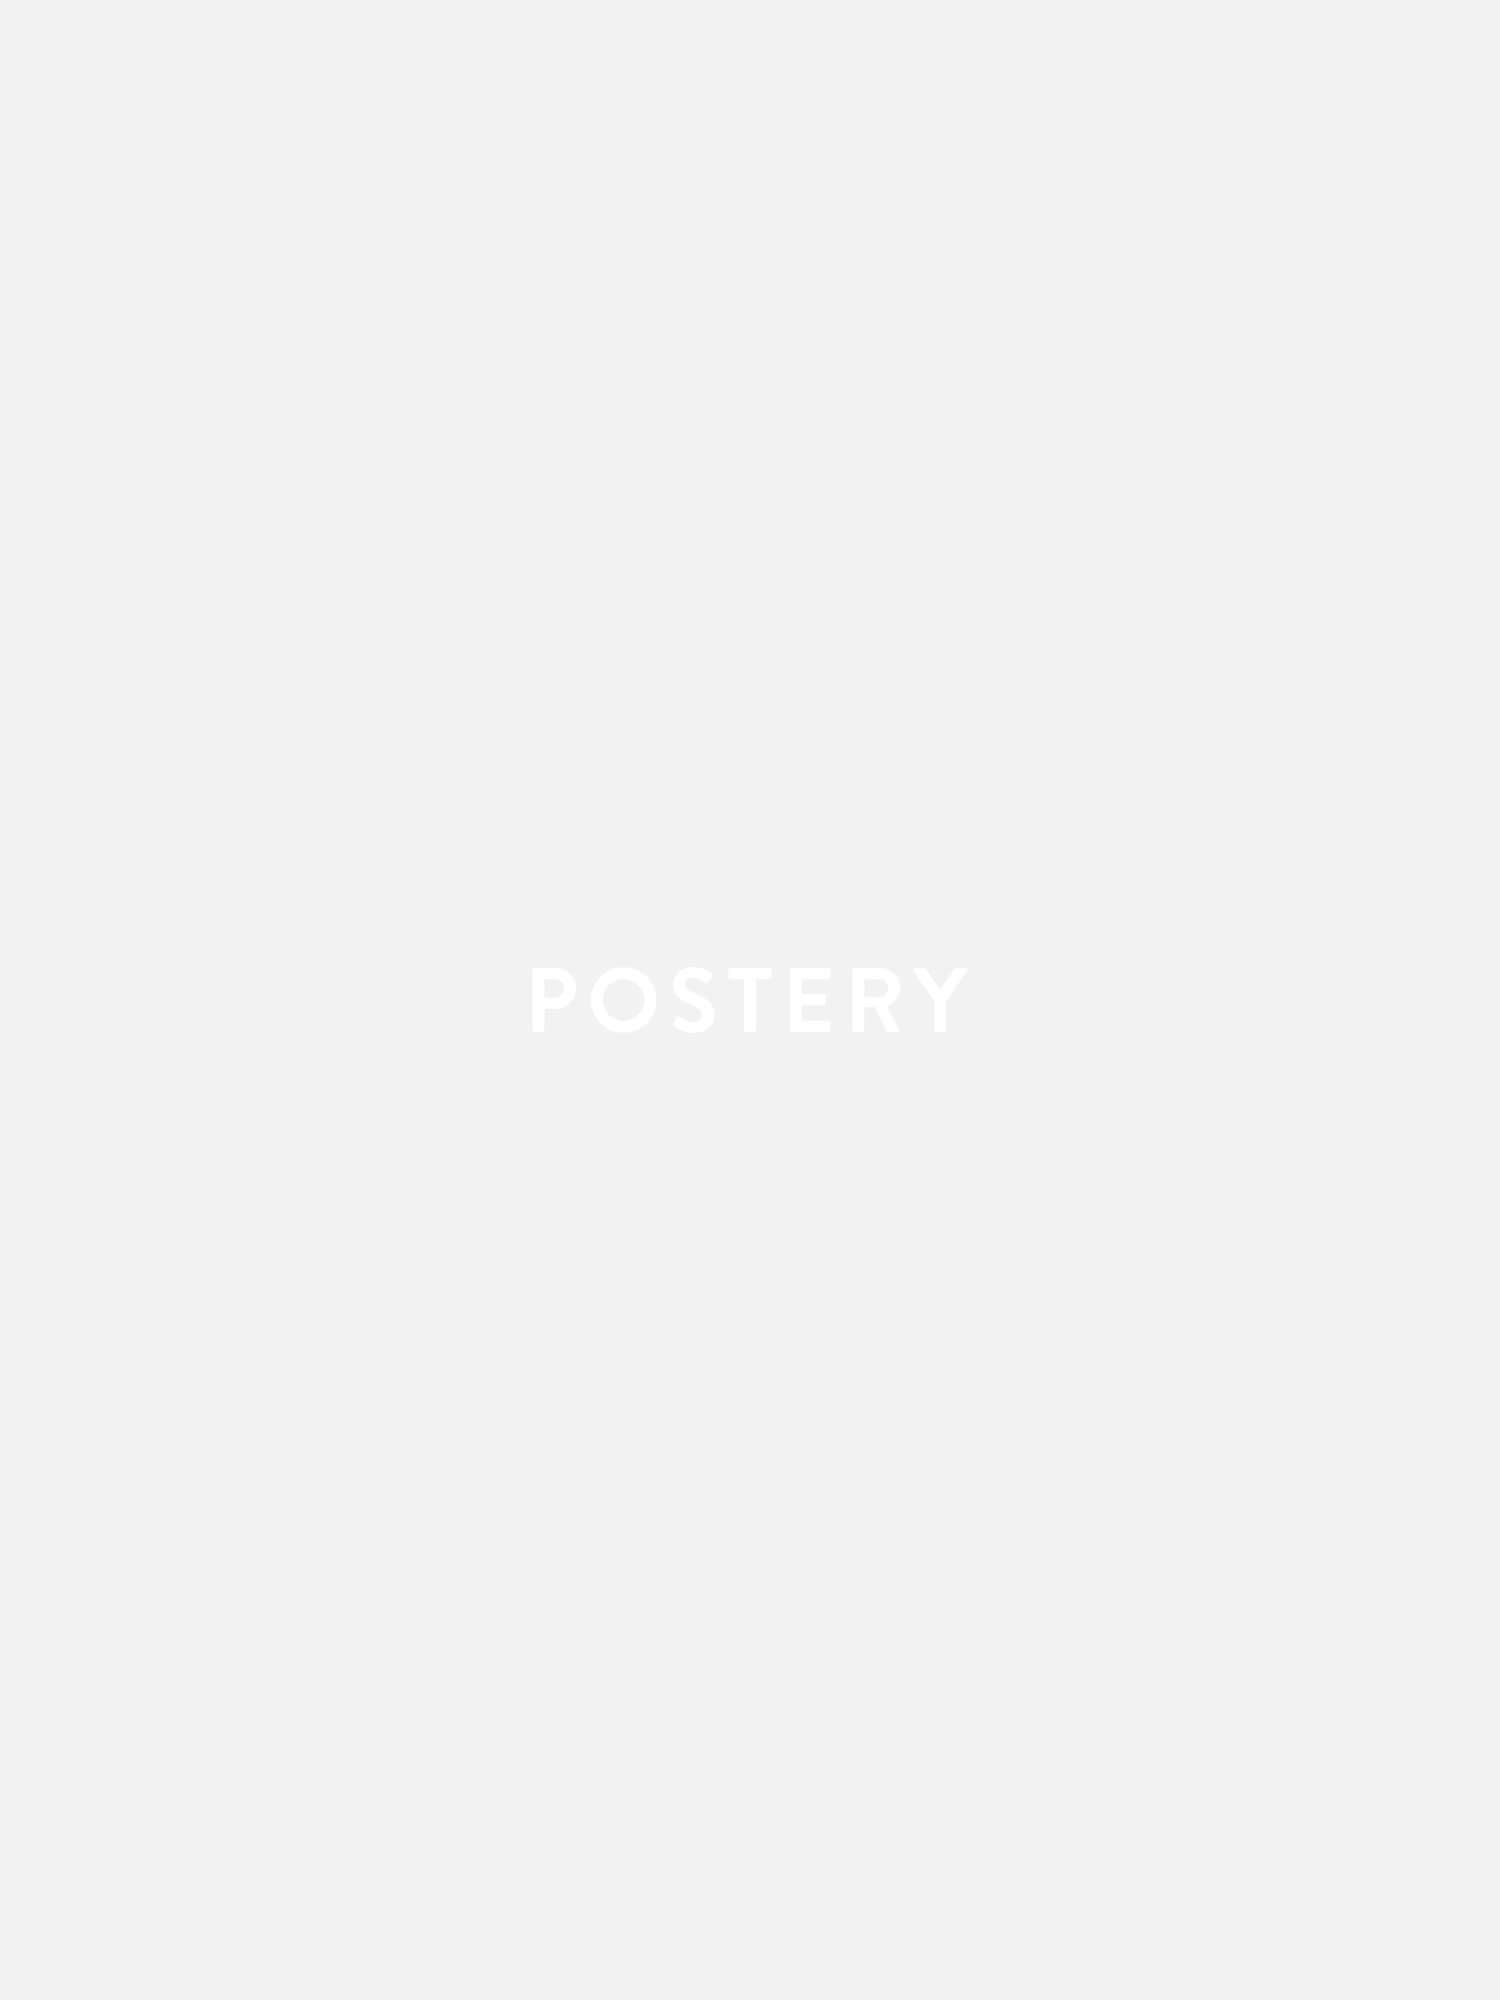 Yellow Graphic no.3 Poster